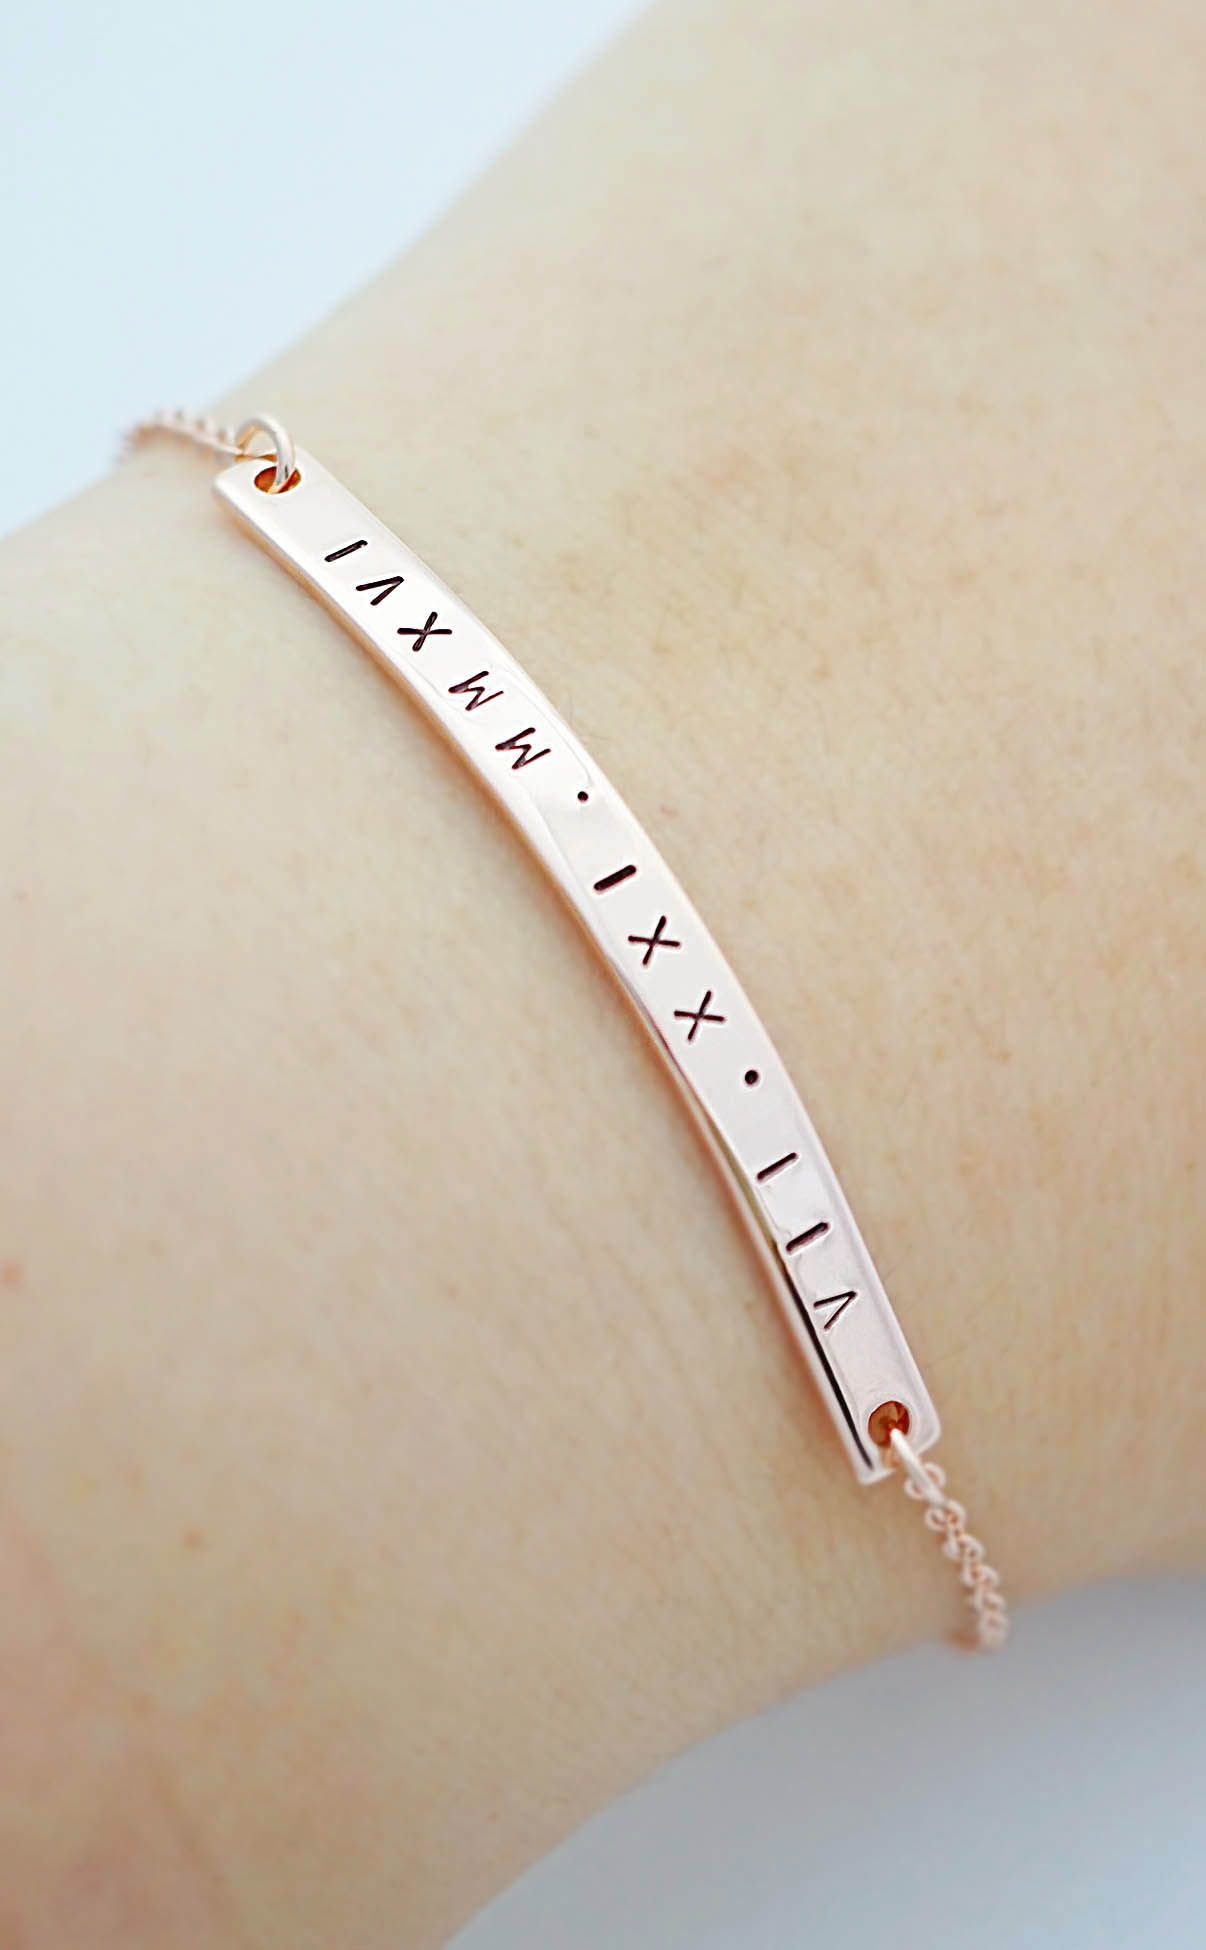 cf quotable designs whitney lat long friendship bracelet our products tree like howard a cuff